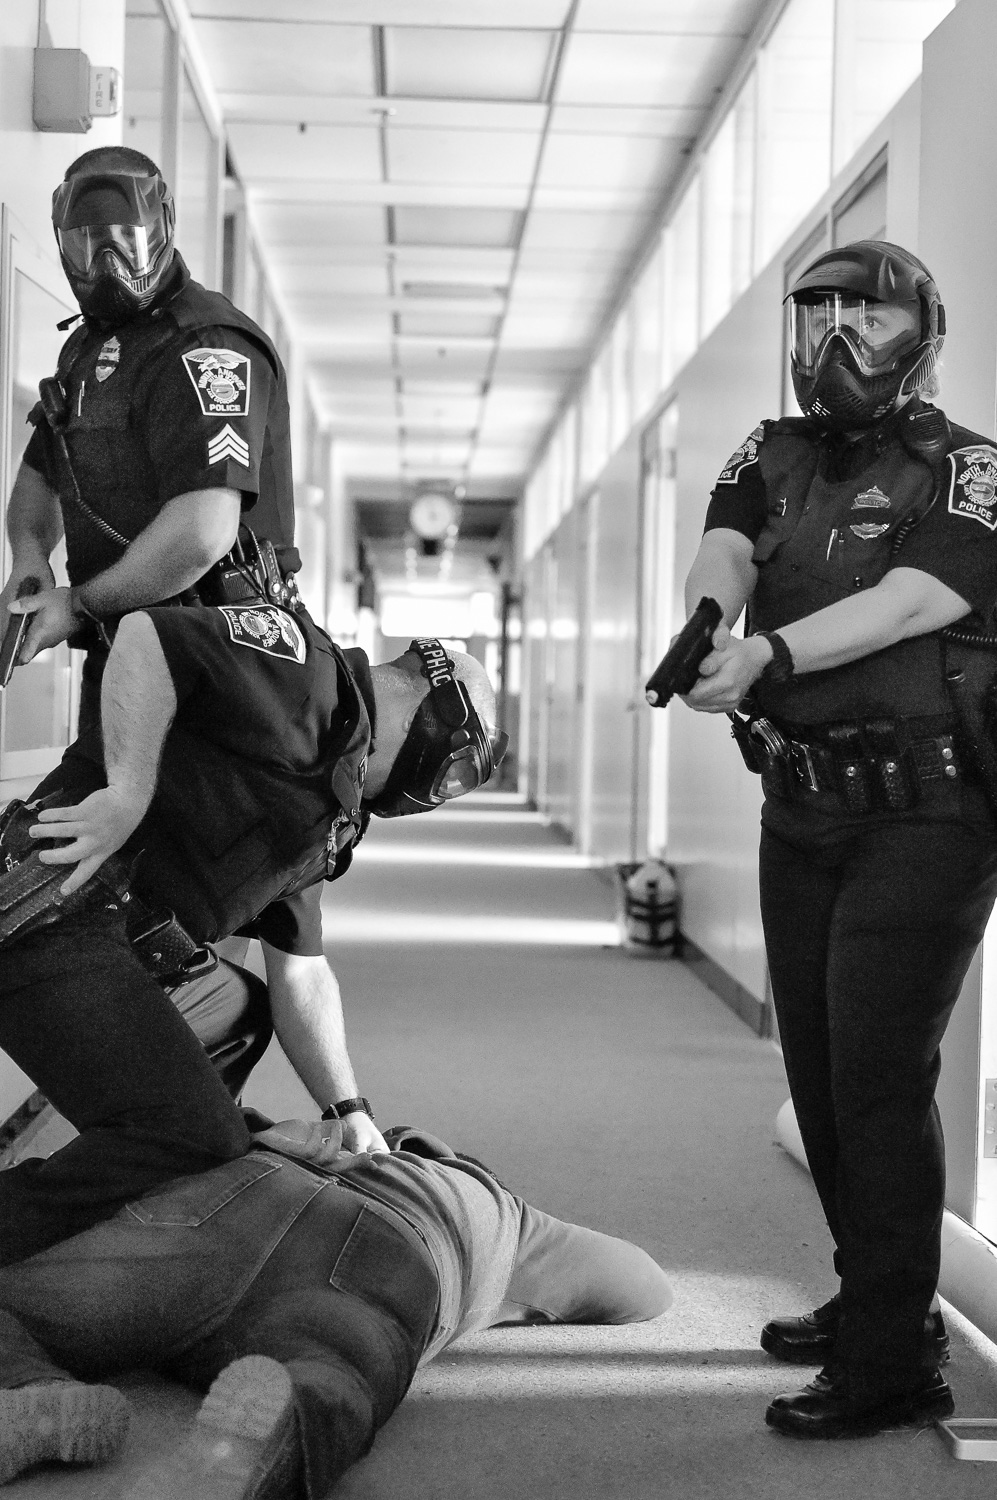 Nikon D4s, 1/1,000 @ f/4, ISO 18,000  North Andover police officer Jason Wedge checks on a victim as Sergeant Fredy Almanzar and officer Ashley Kneeland provide coverage during an active shooter training at Osgood Landing on Wednesday, April 18, 2018. [Wicked Local Staff Photo / David Sokol]